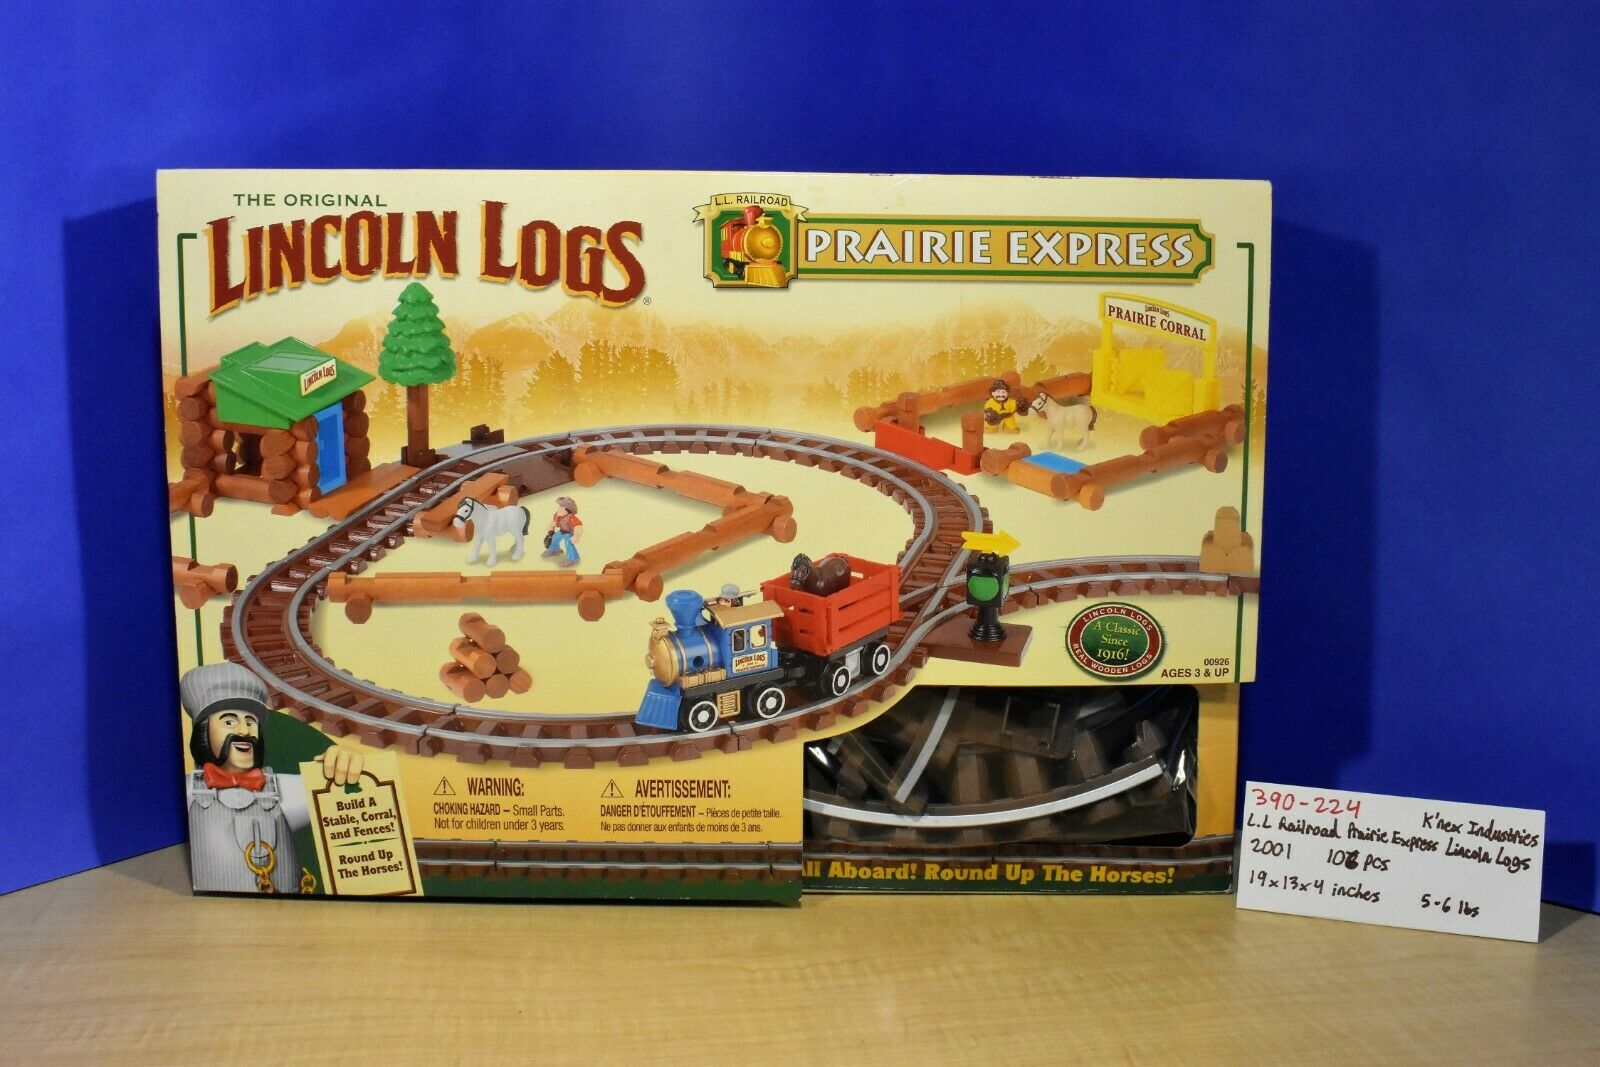 K 'nex 2001 el Original Lincoln Logs Prairie Express Lincoln Logs (390-224)